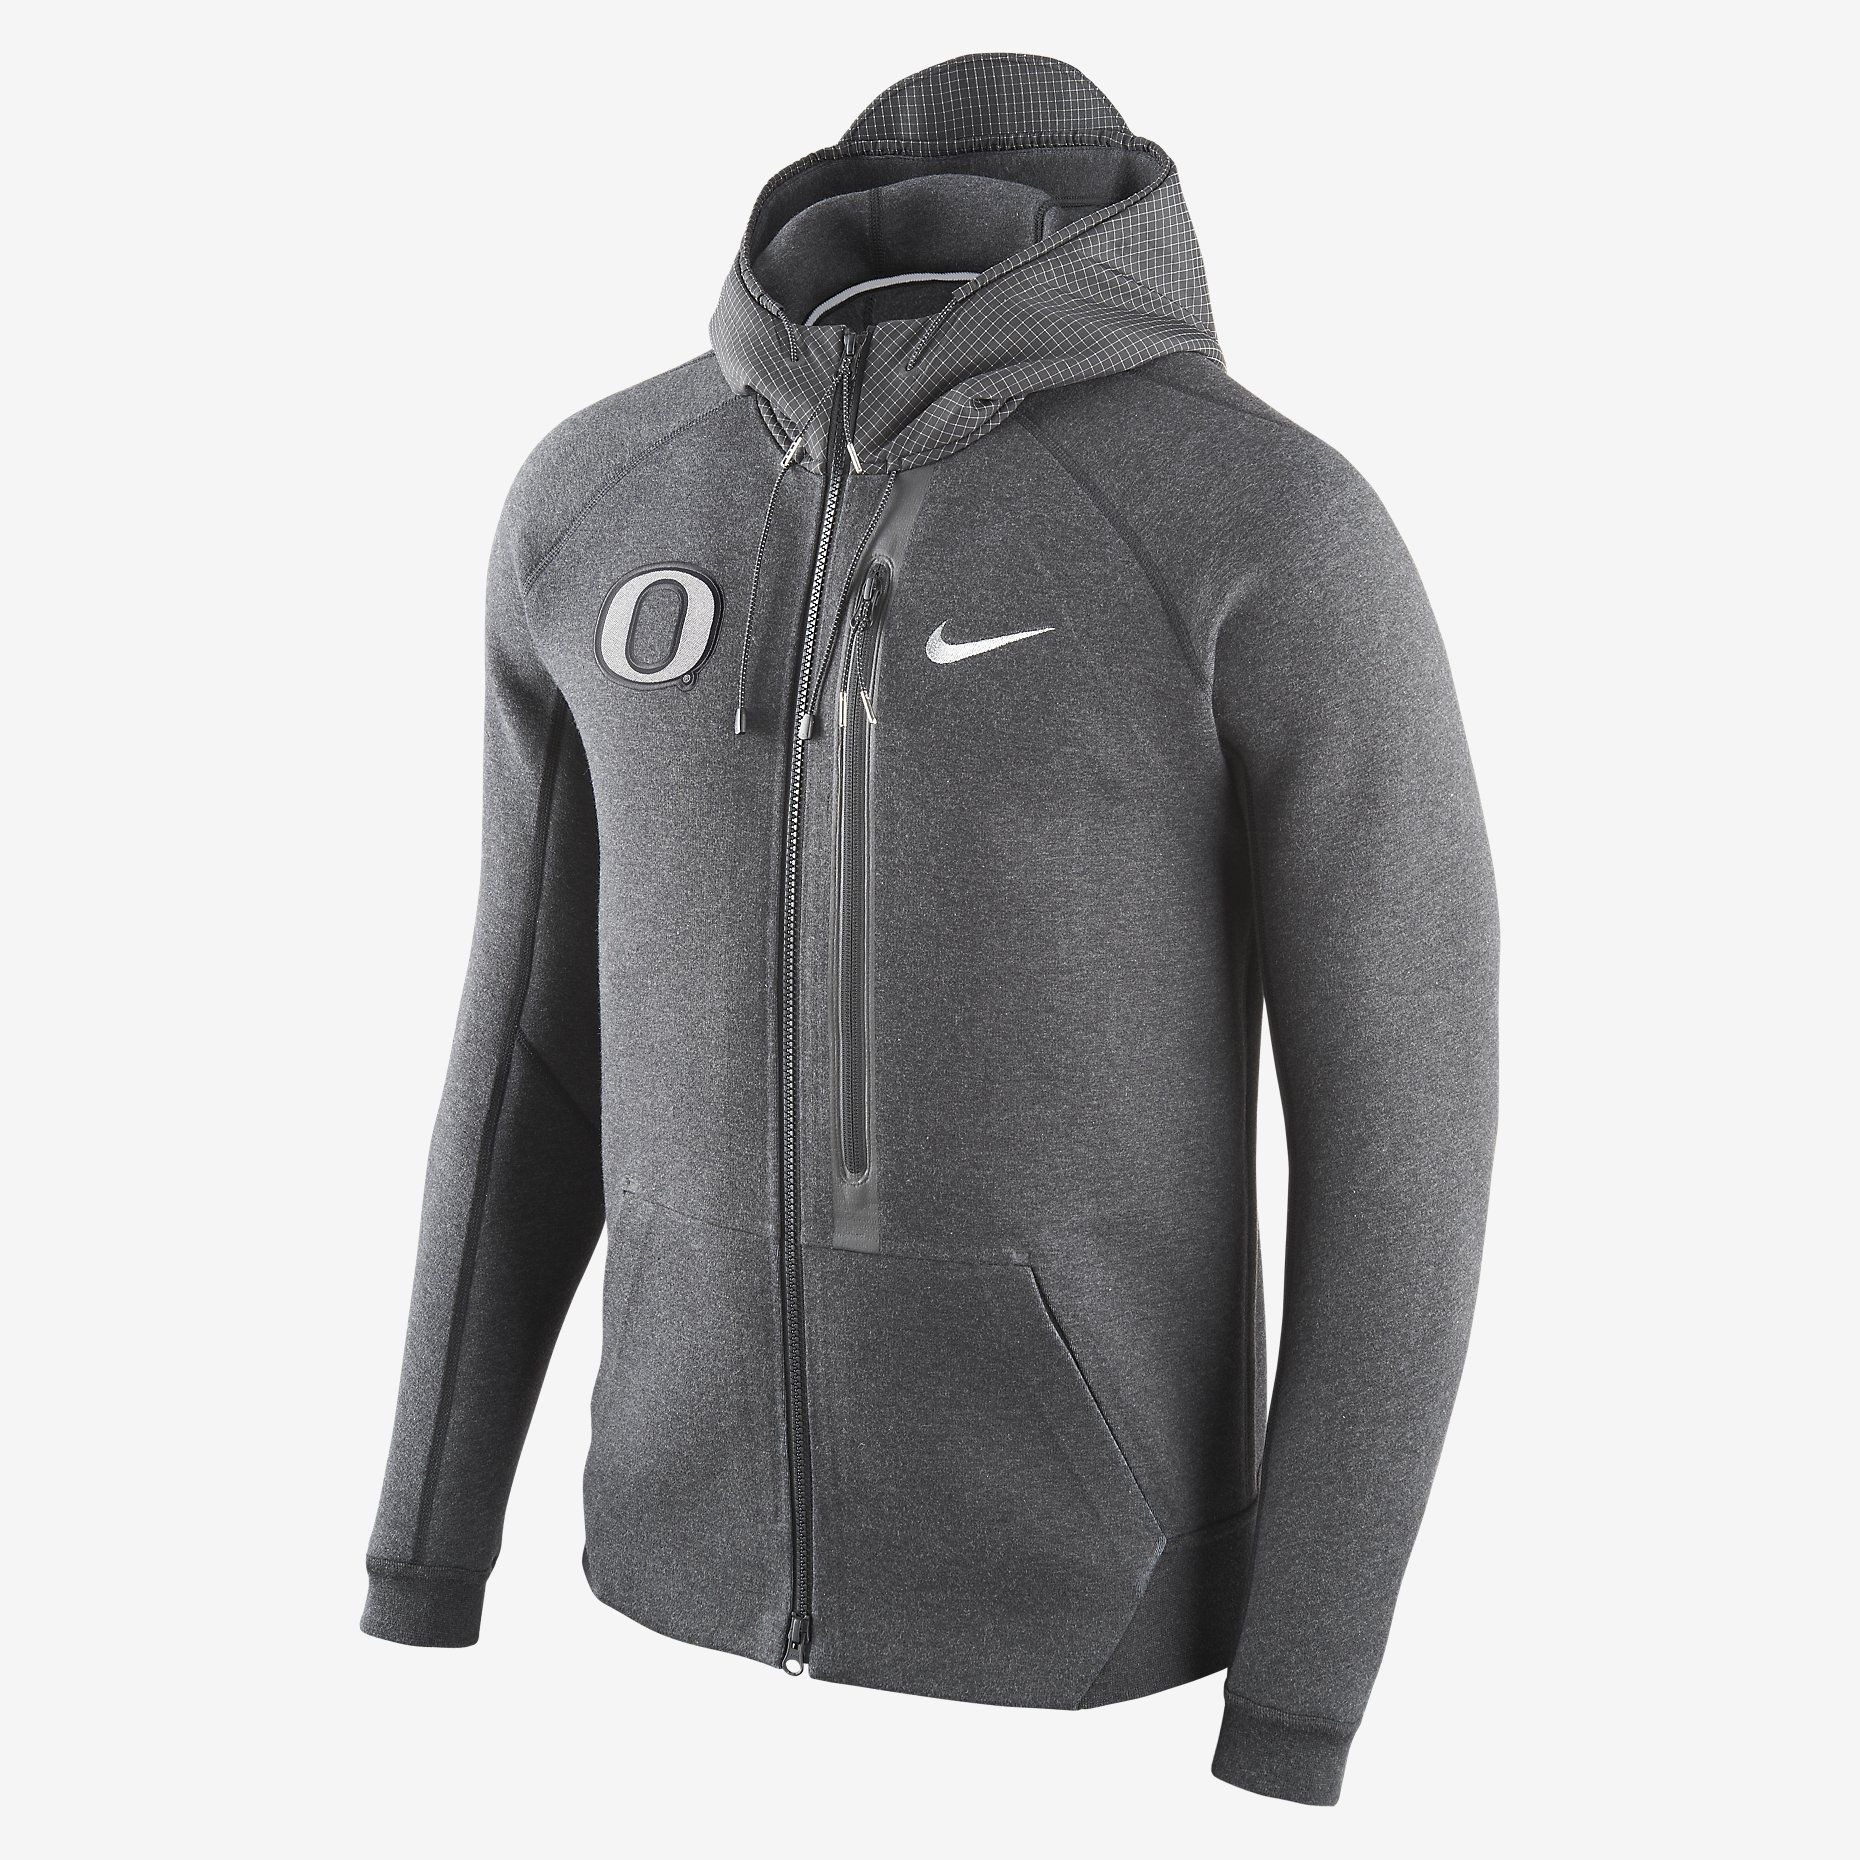 Mens Nike Diamond Quest Tech Fleece Full Zip Black Hoodie (Oregon)